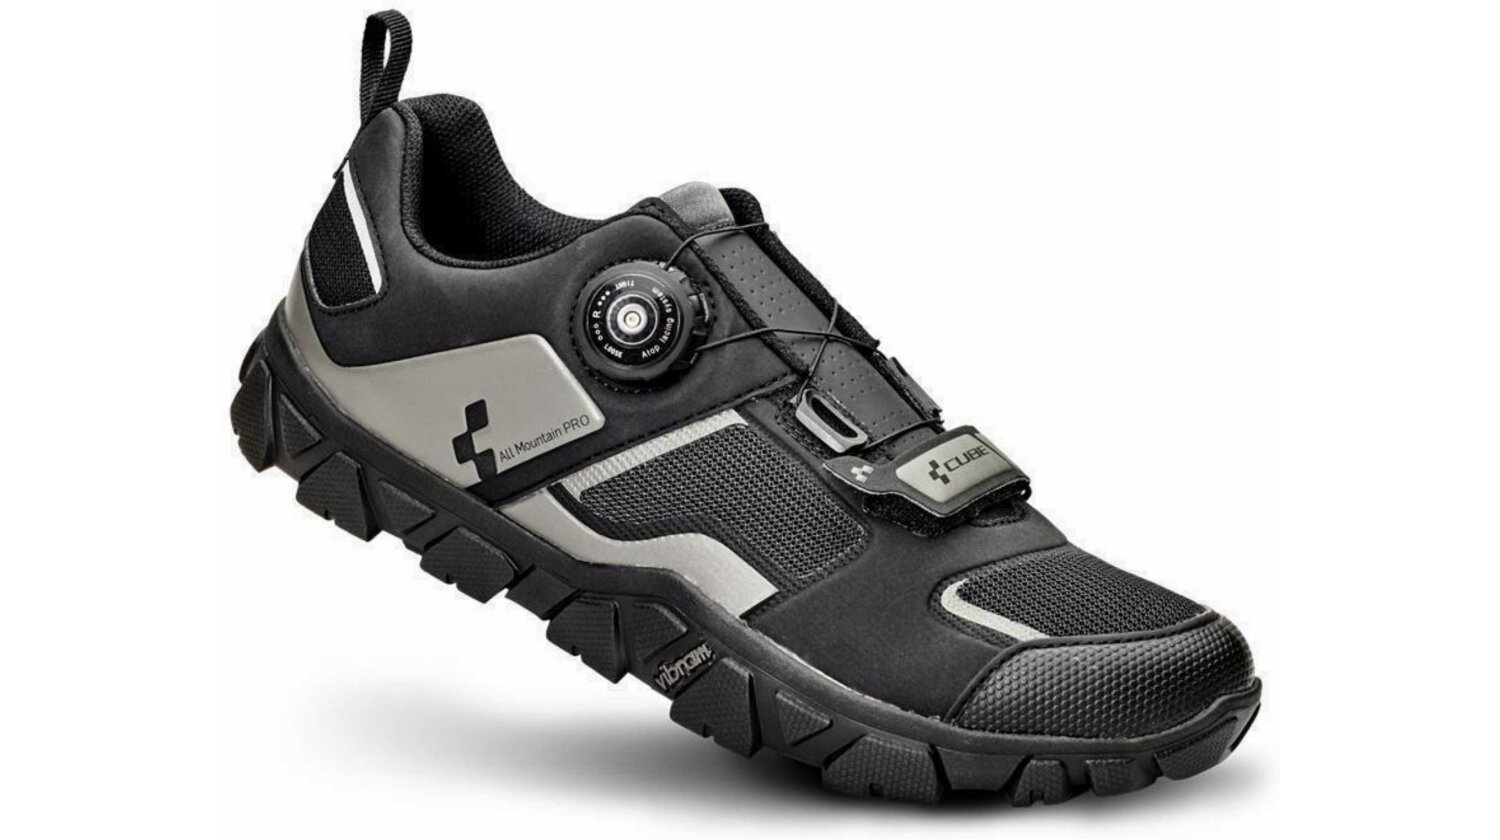 Cube Schuhe ALL MOUNTAIN PRO Blackline EU 47